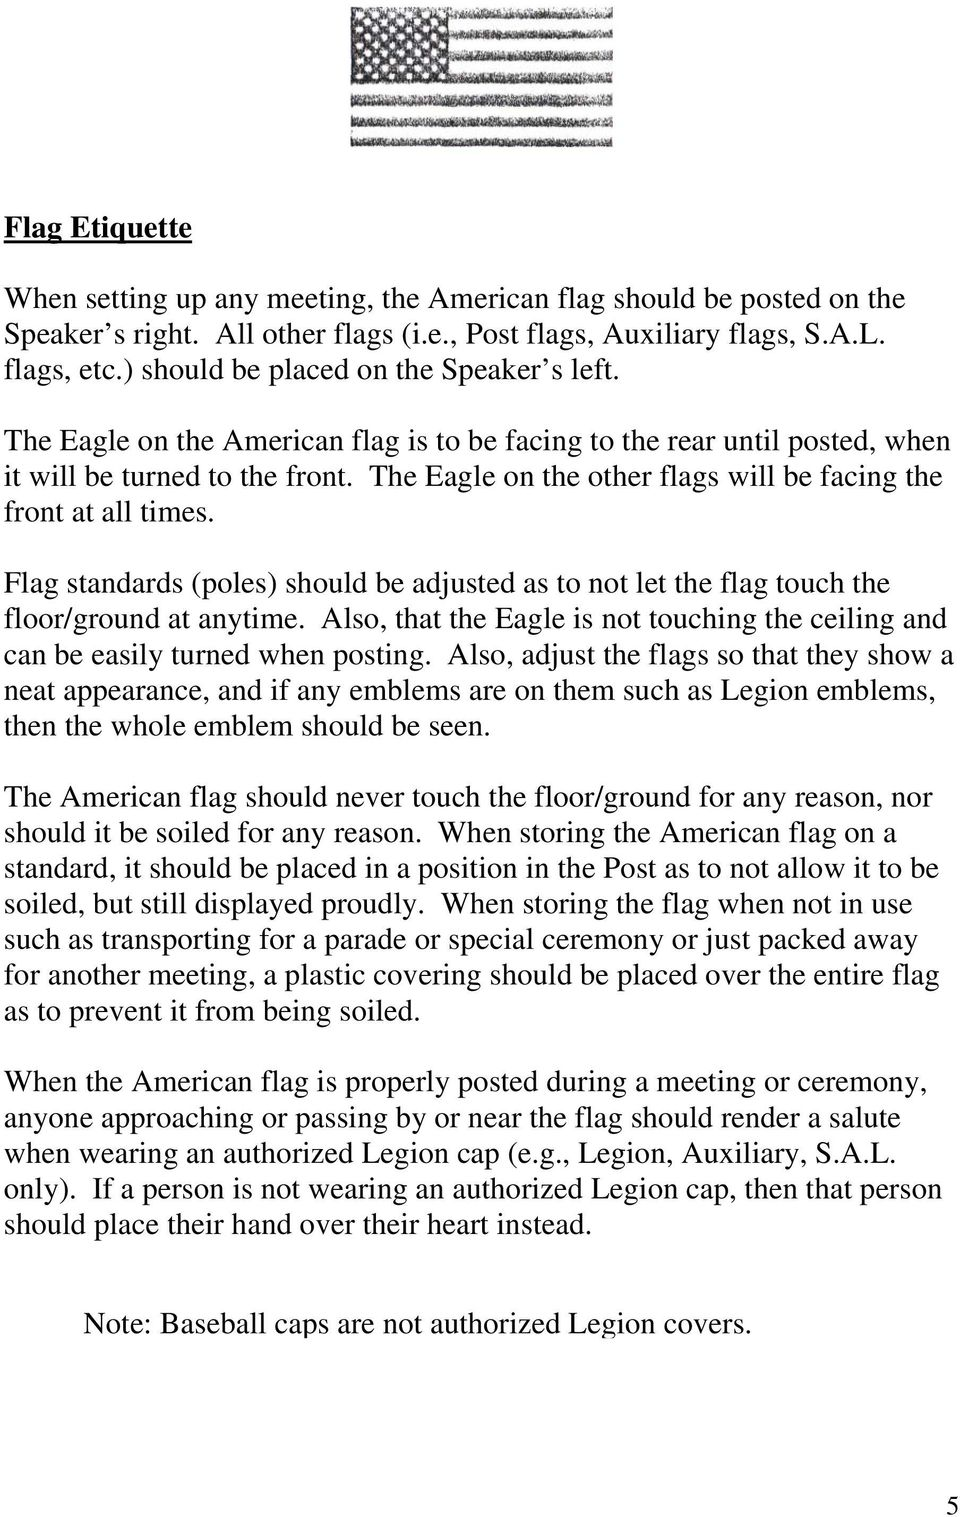 The Eagle on the other flags will be facing the front at all times. Flag standards (poles) should be adjusted as to not let the flag touch the floor/ground at anytime.